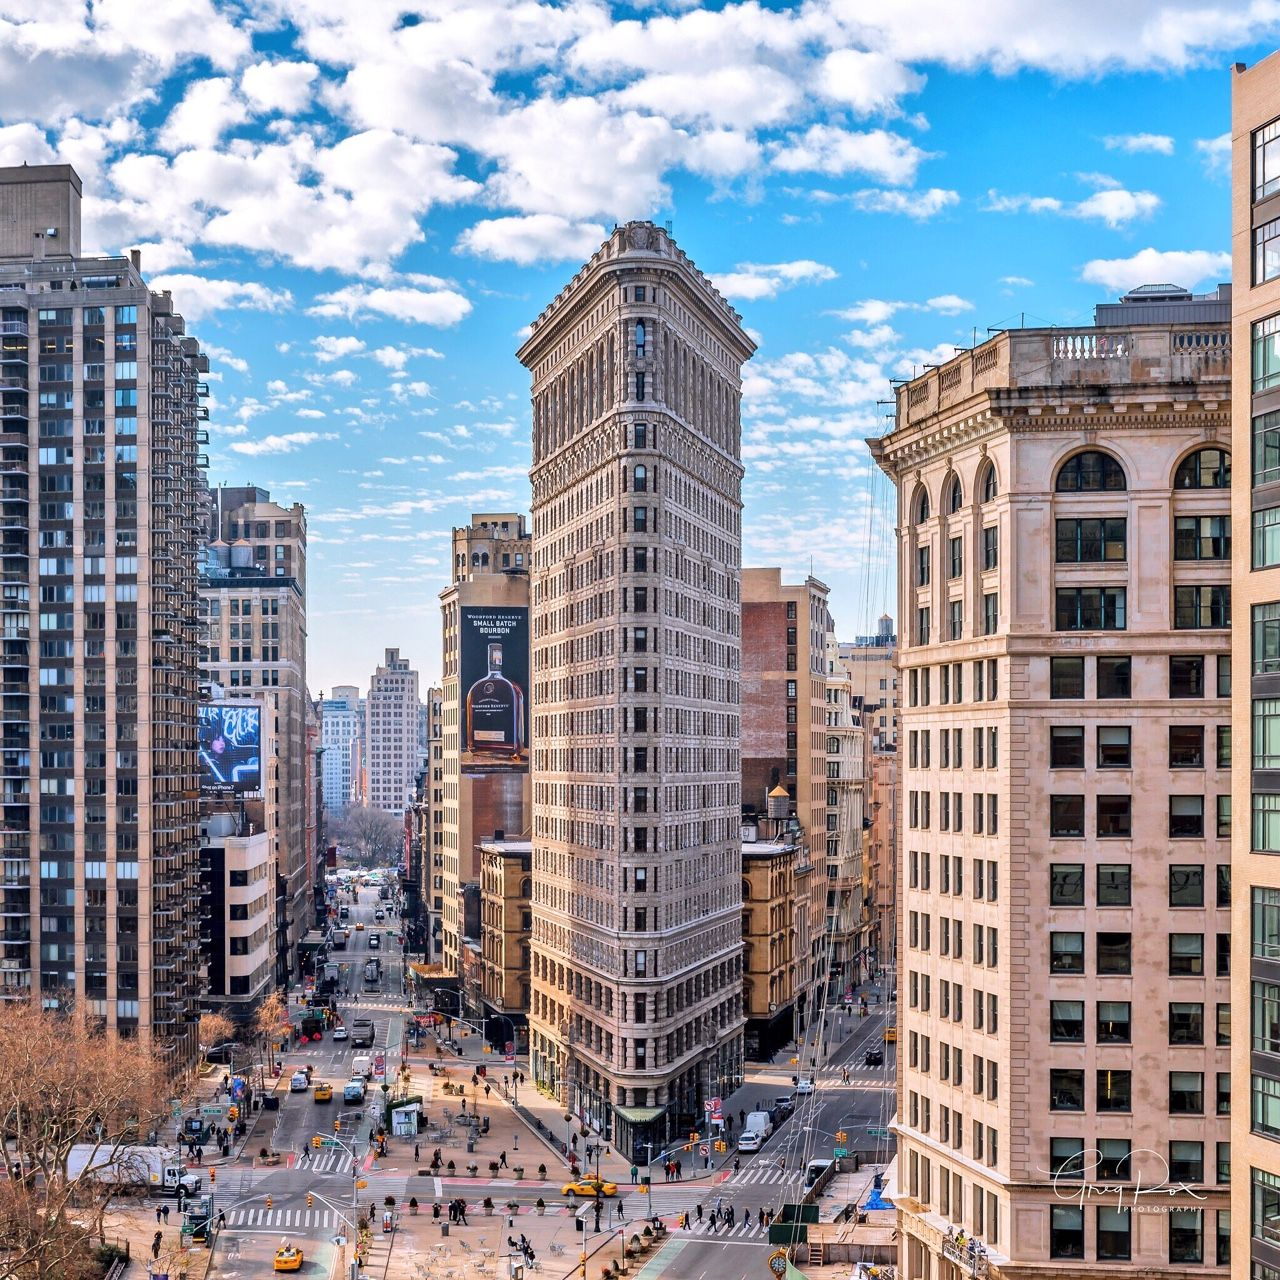 The Beautiful Flatiron Building by Greg Torchia @gregroxphotos | via newyorkcityfeelings.com - The Best Photos and Videos of New York City including the Statue of Liberty Brooklyn Bridge Central Park Empire State Building Chrysler Building and other popular New York places and attractions.